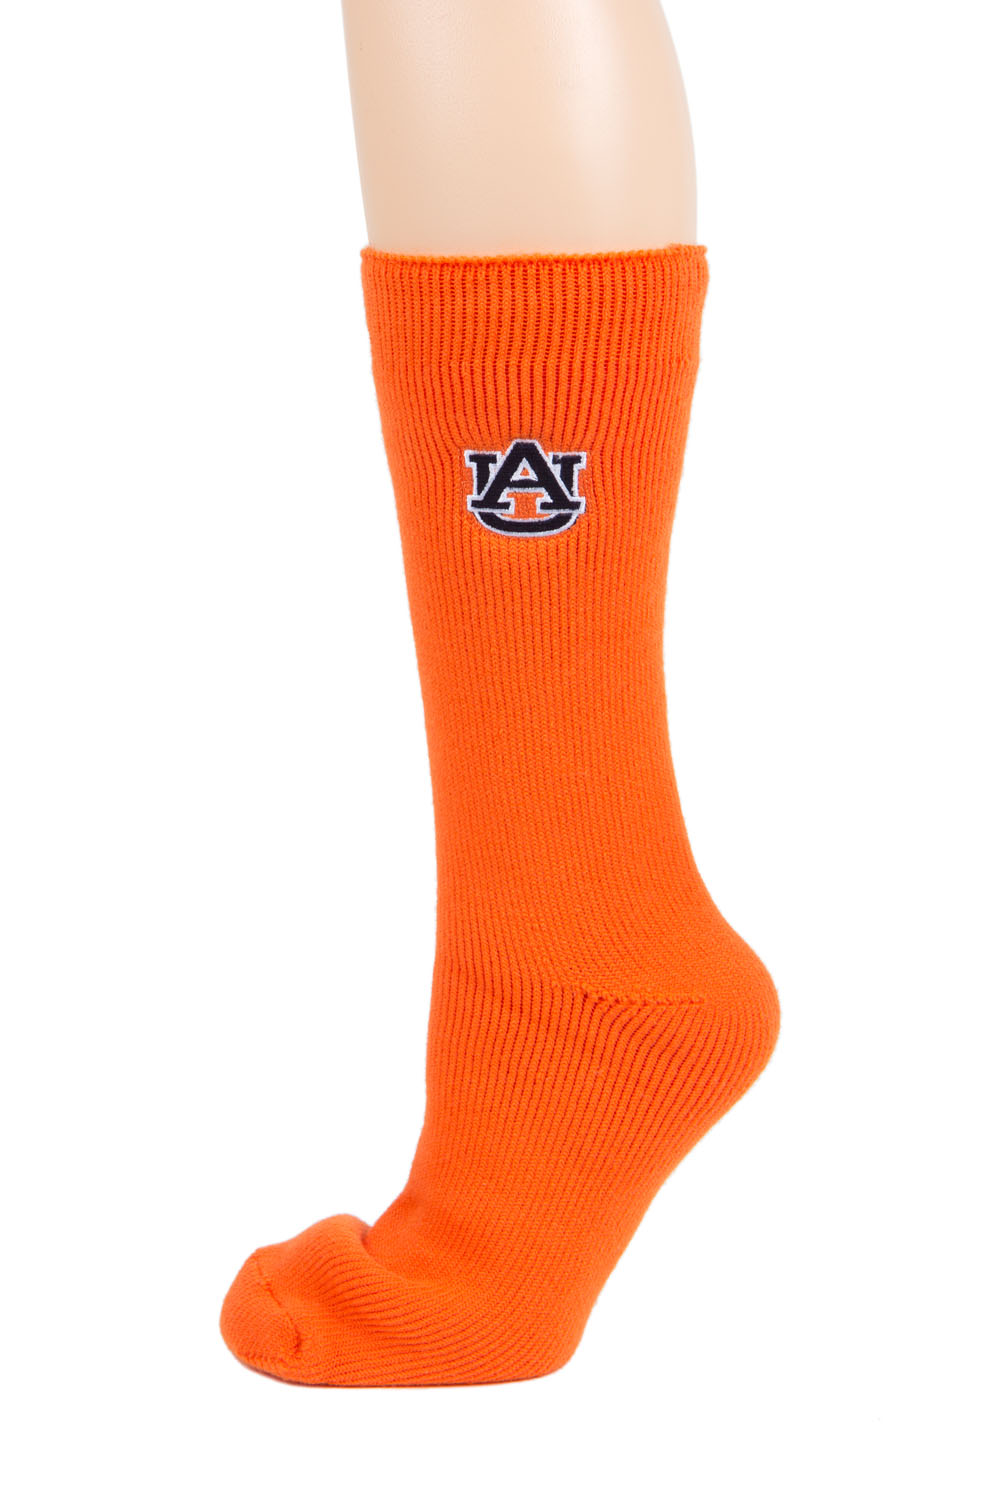 Auburn Tigers Orange Thermal Sock by Donegal Bay